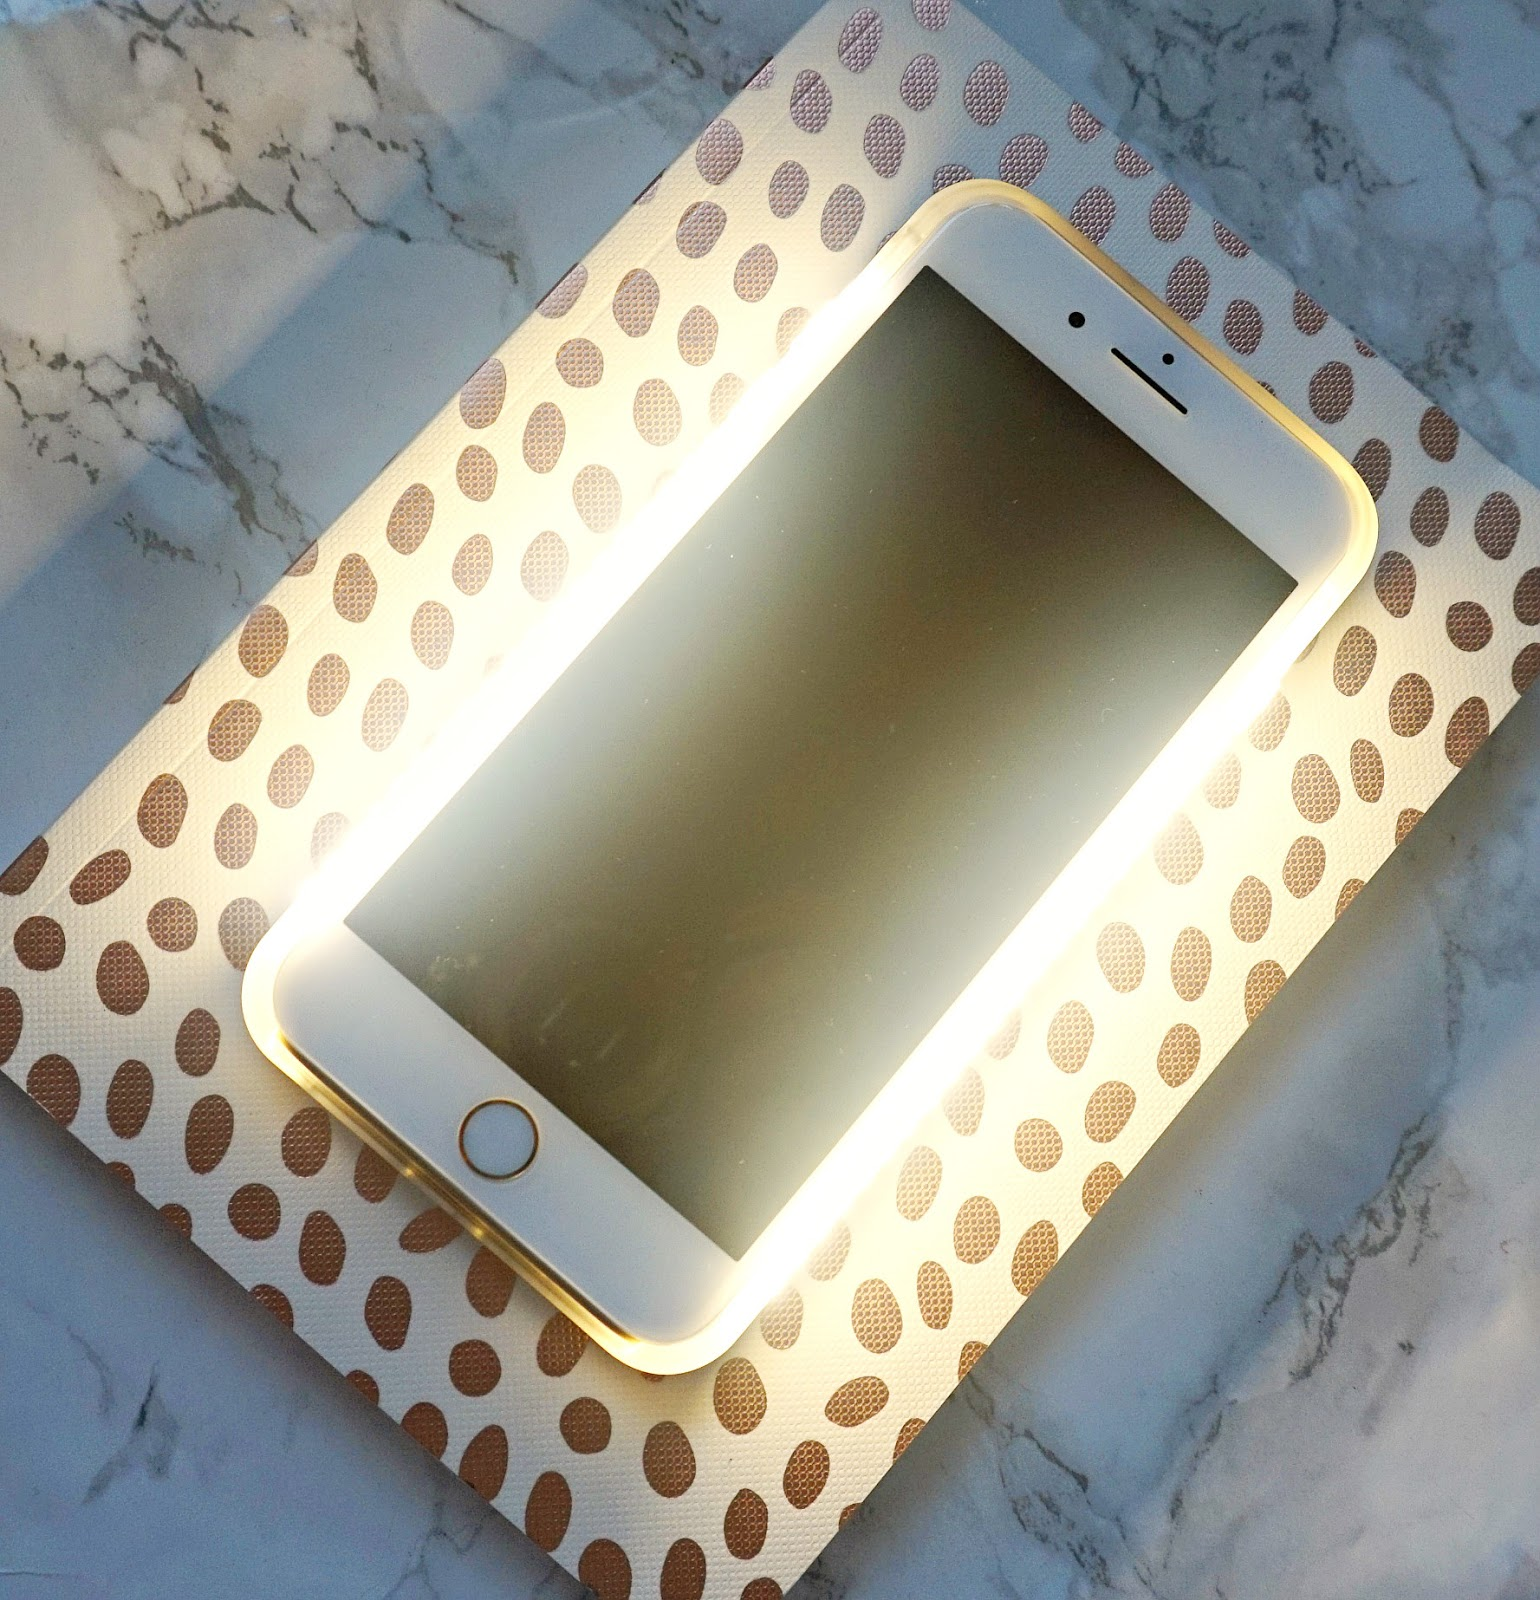 led selfie case for the iphone #litbylumee